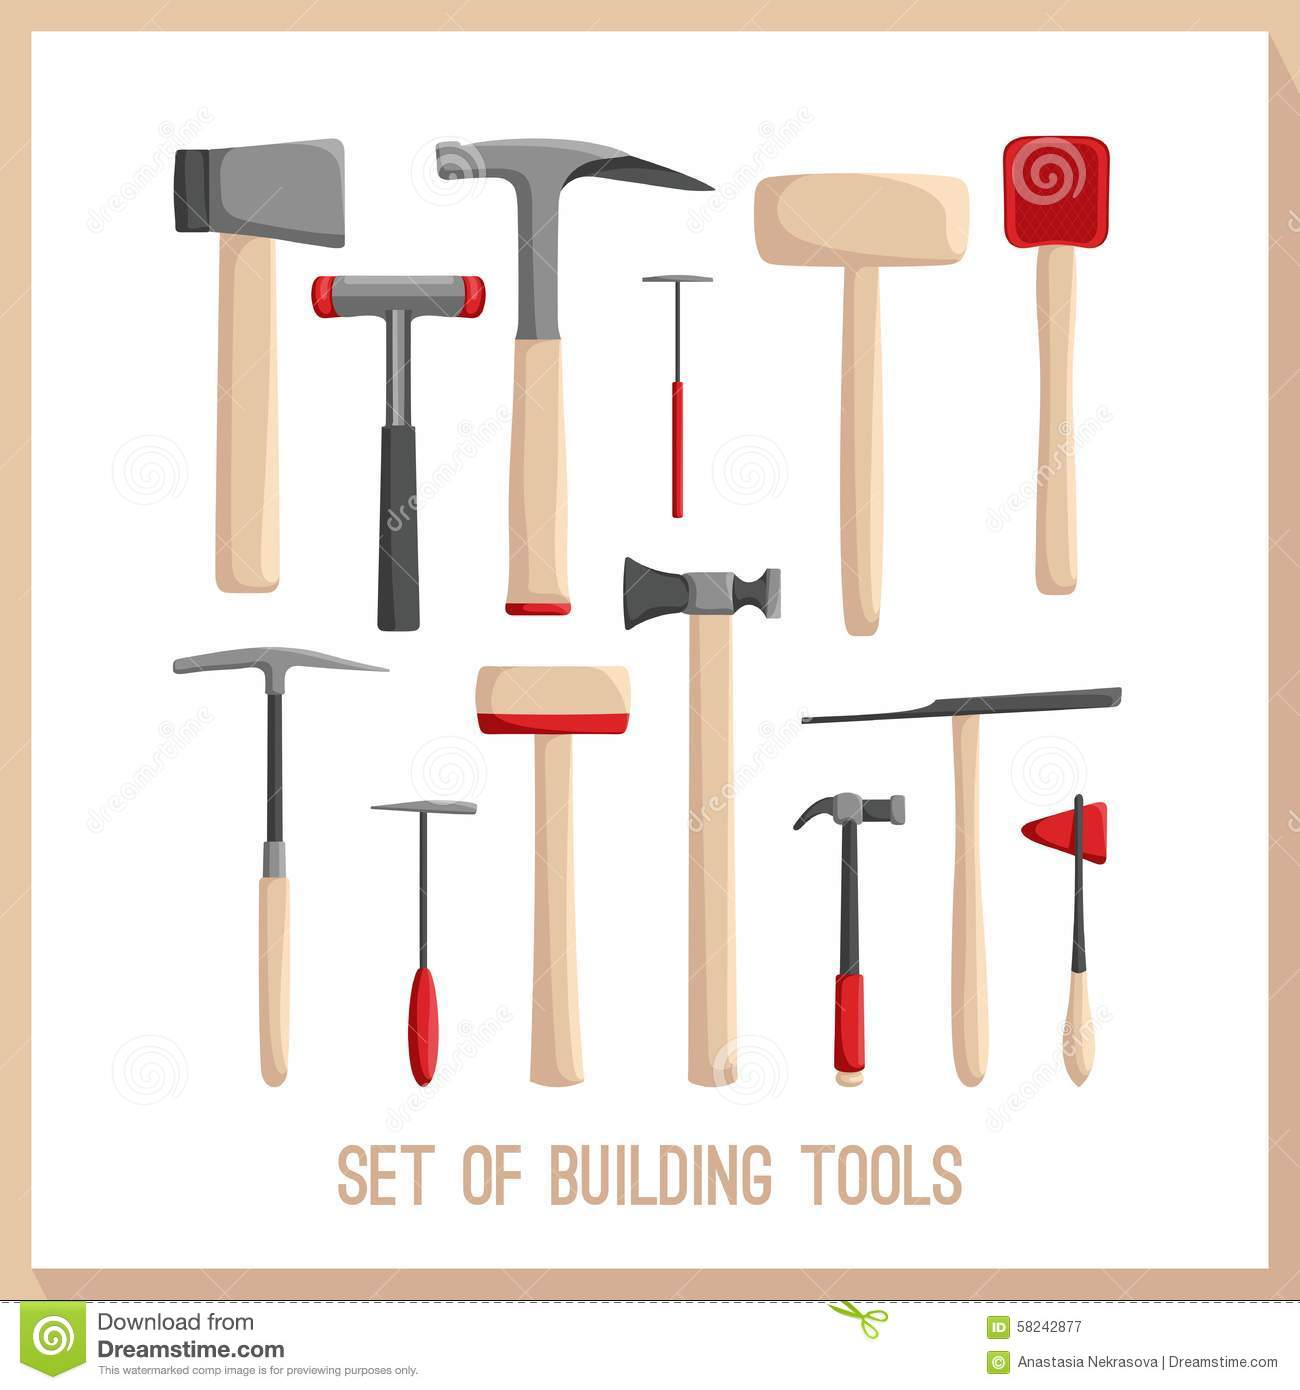 Set of building tools buildings tools icons set flat Building design tool